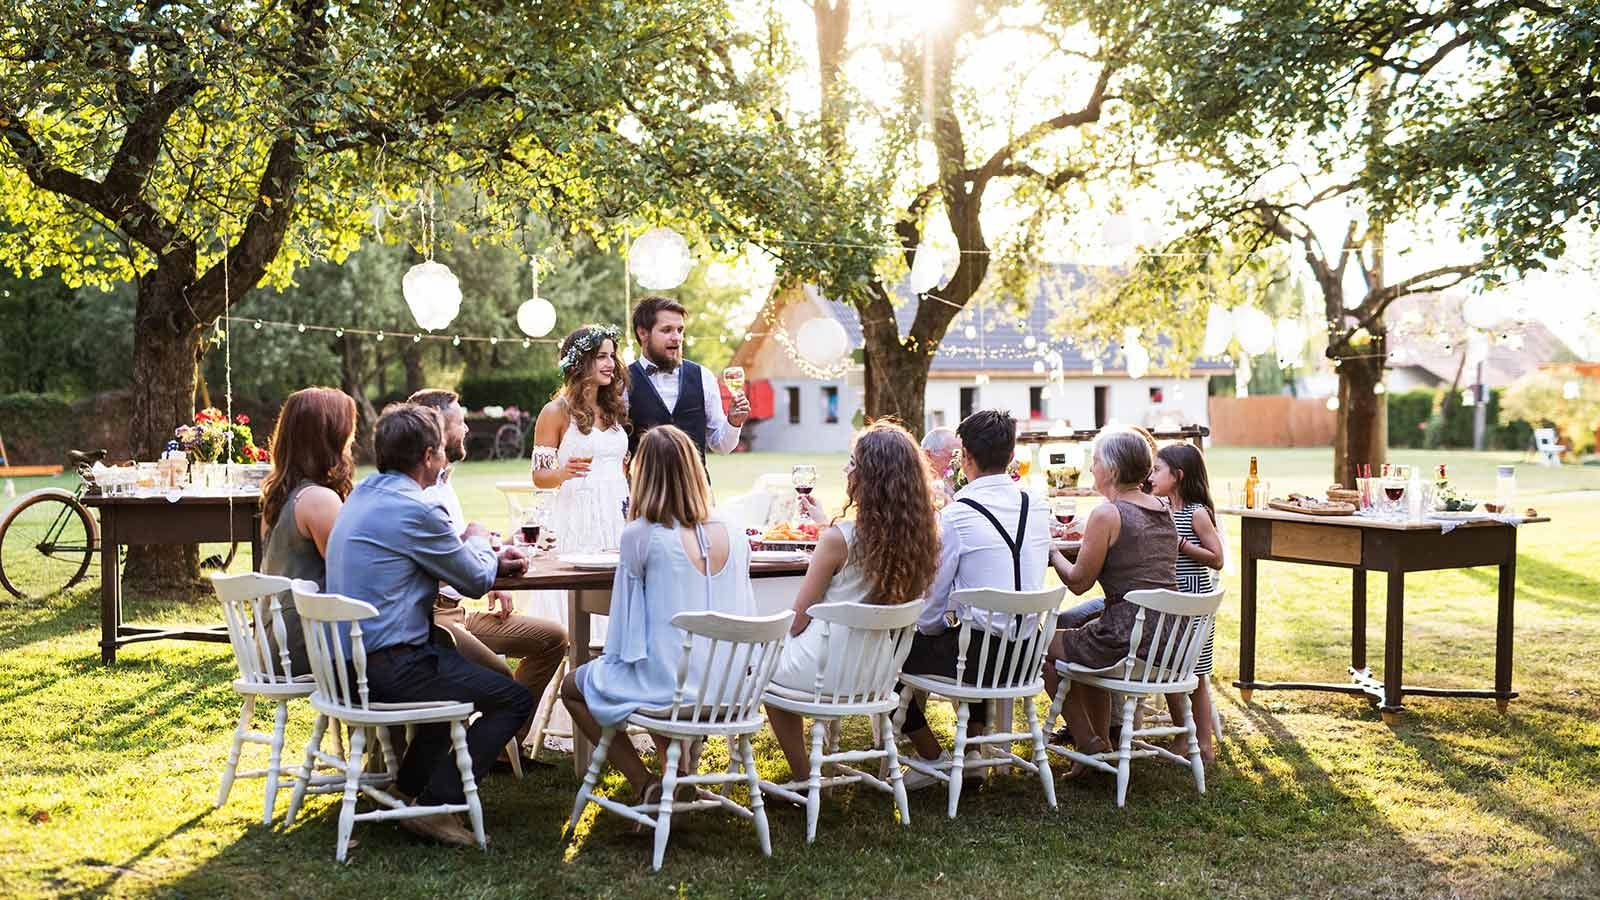 Guests gathered at a casual wedding